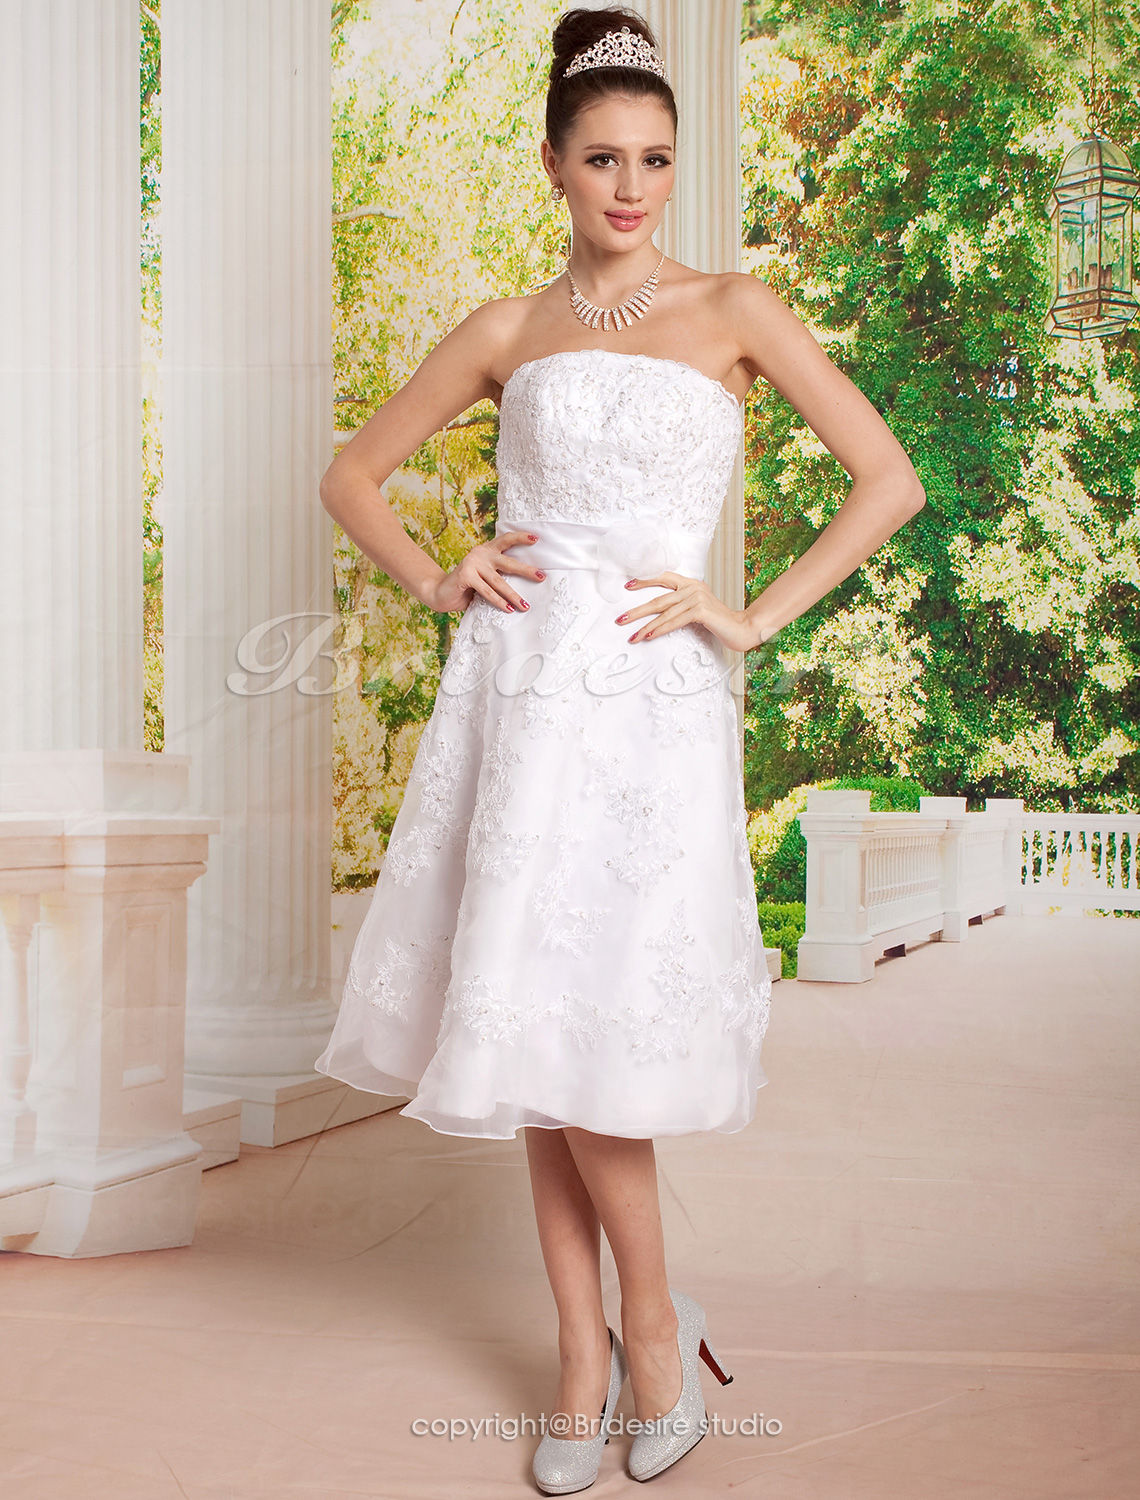 Sheath/Column Tea-length Strapless Wedding Dress with Beaded Appliques